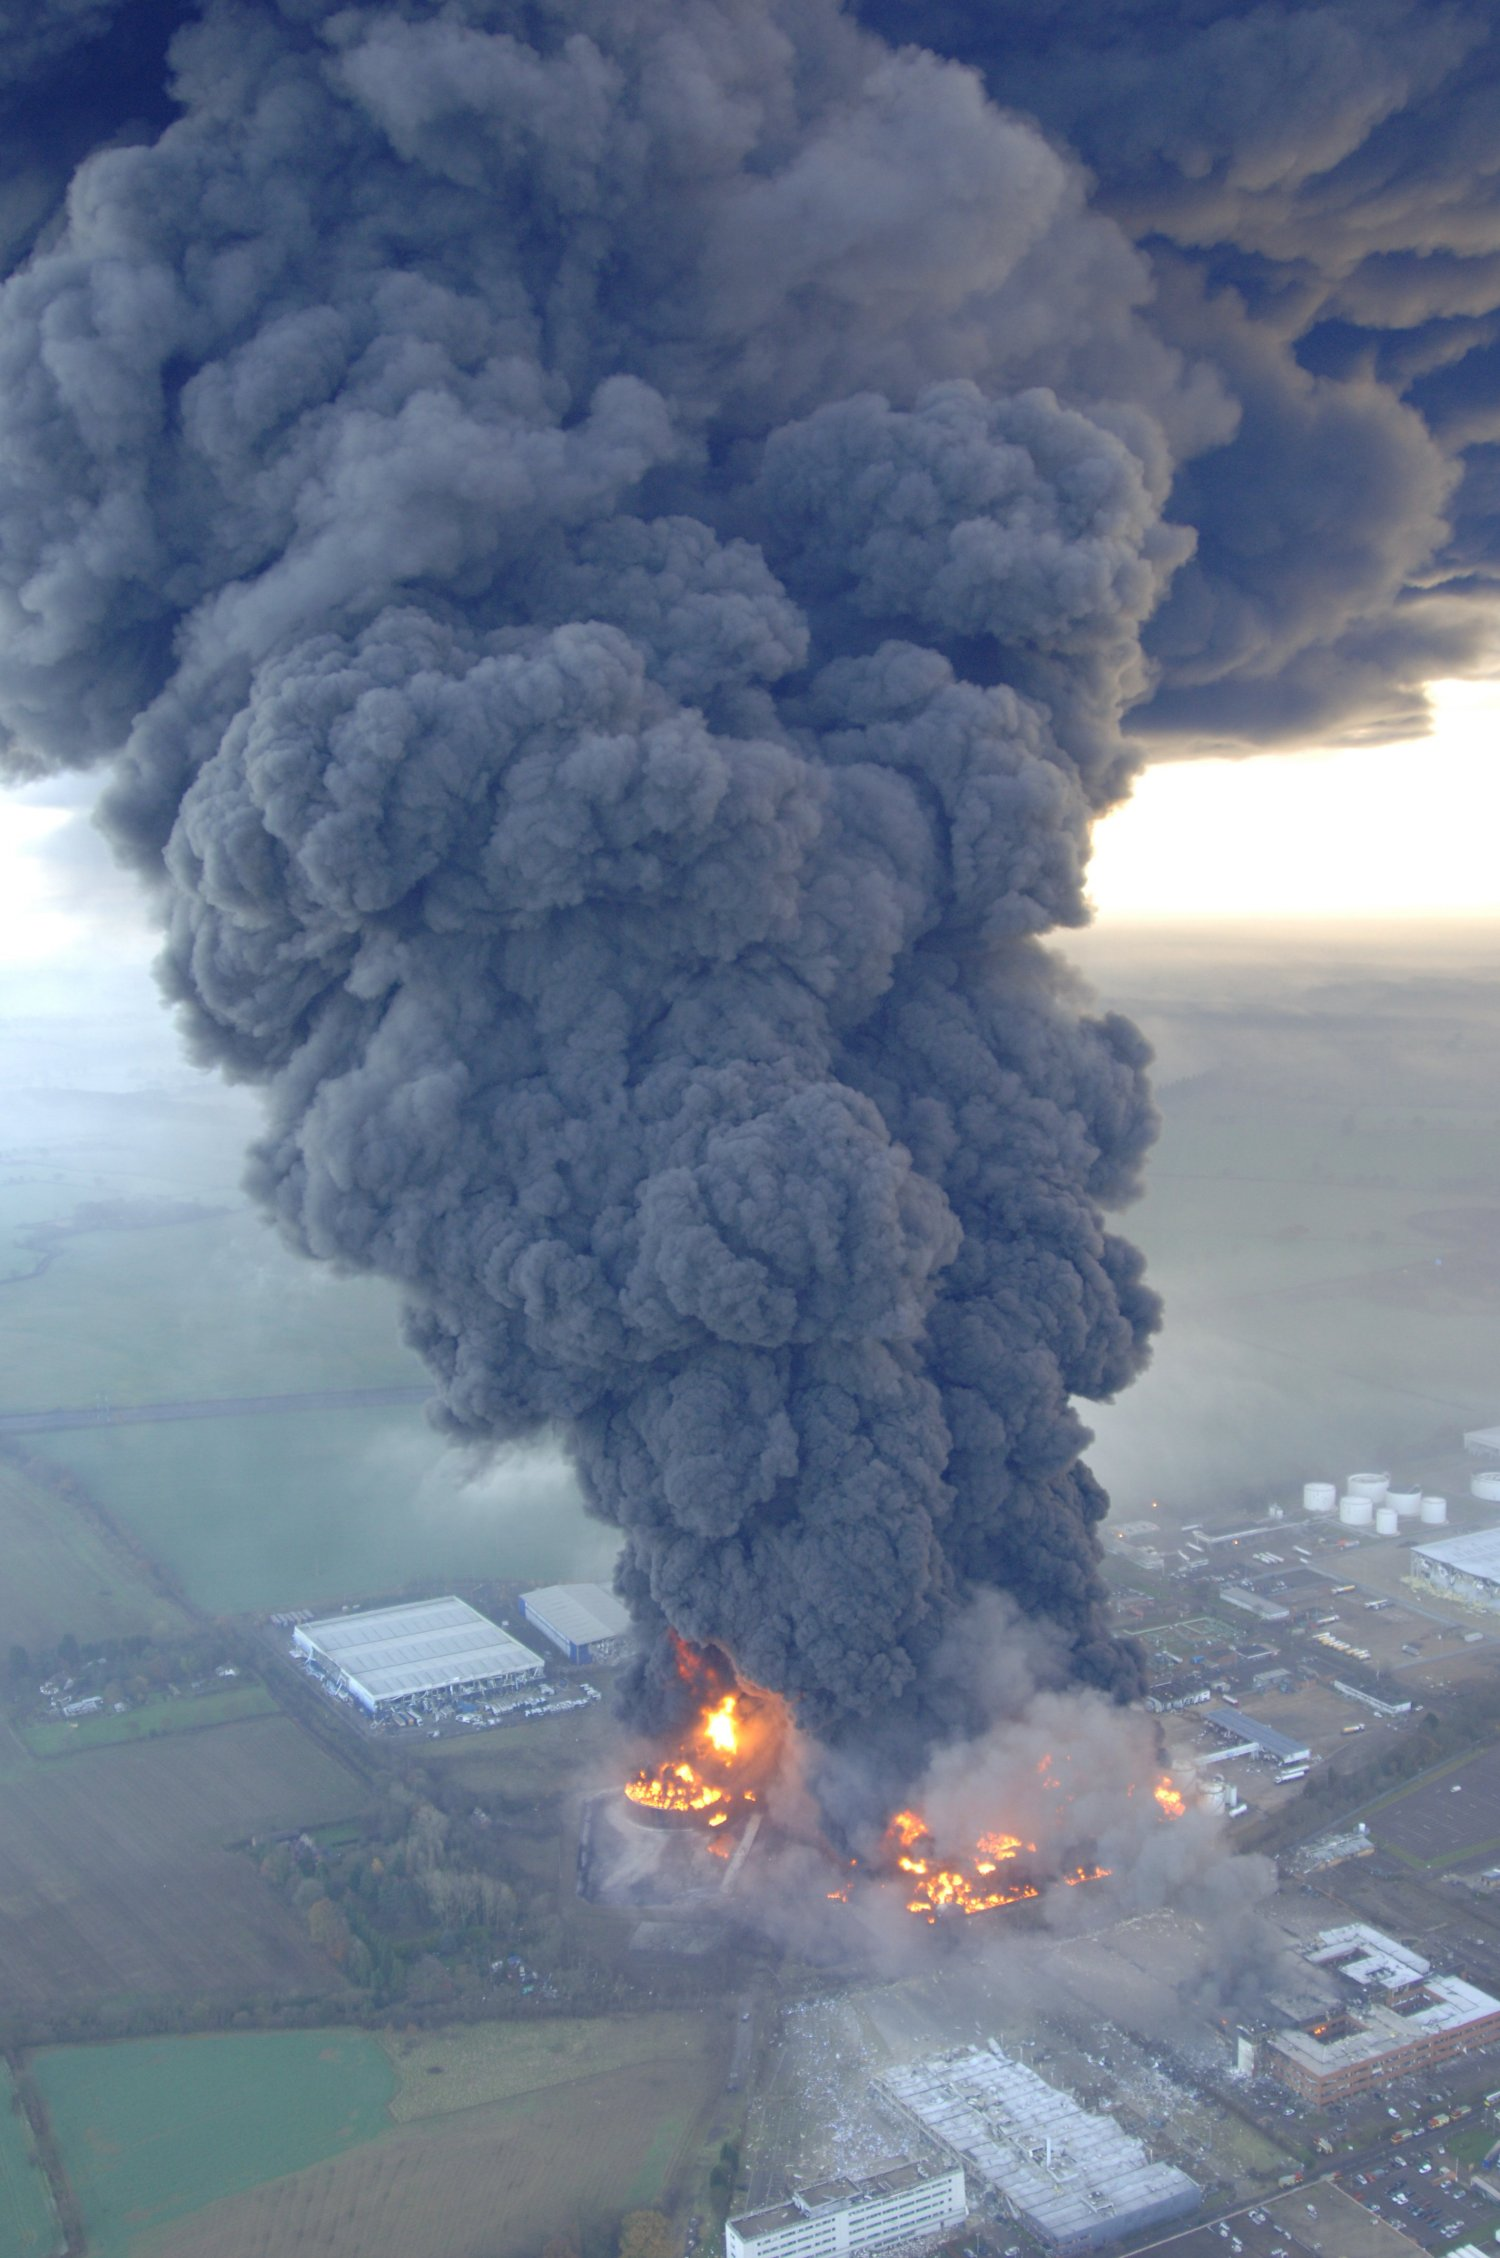 Disaster recovery: Buncefield storage tank fire